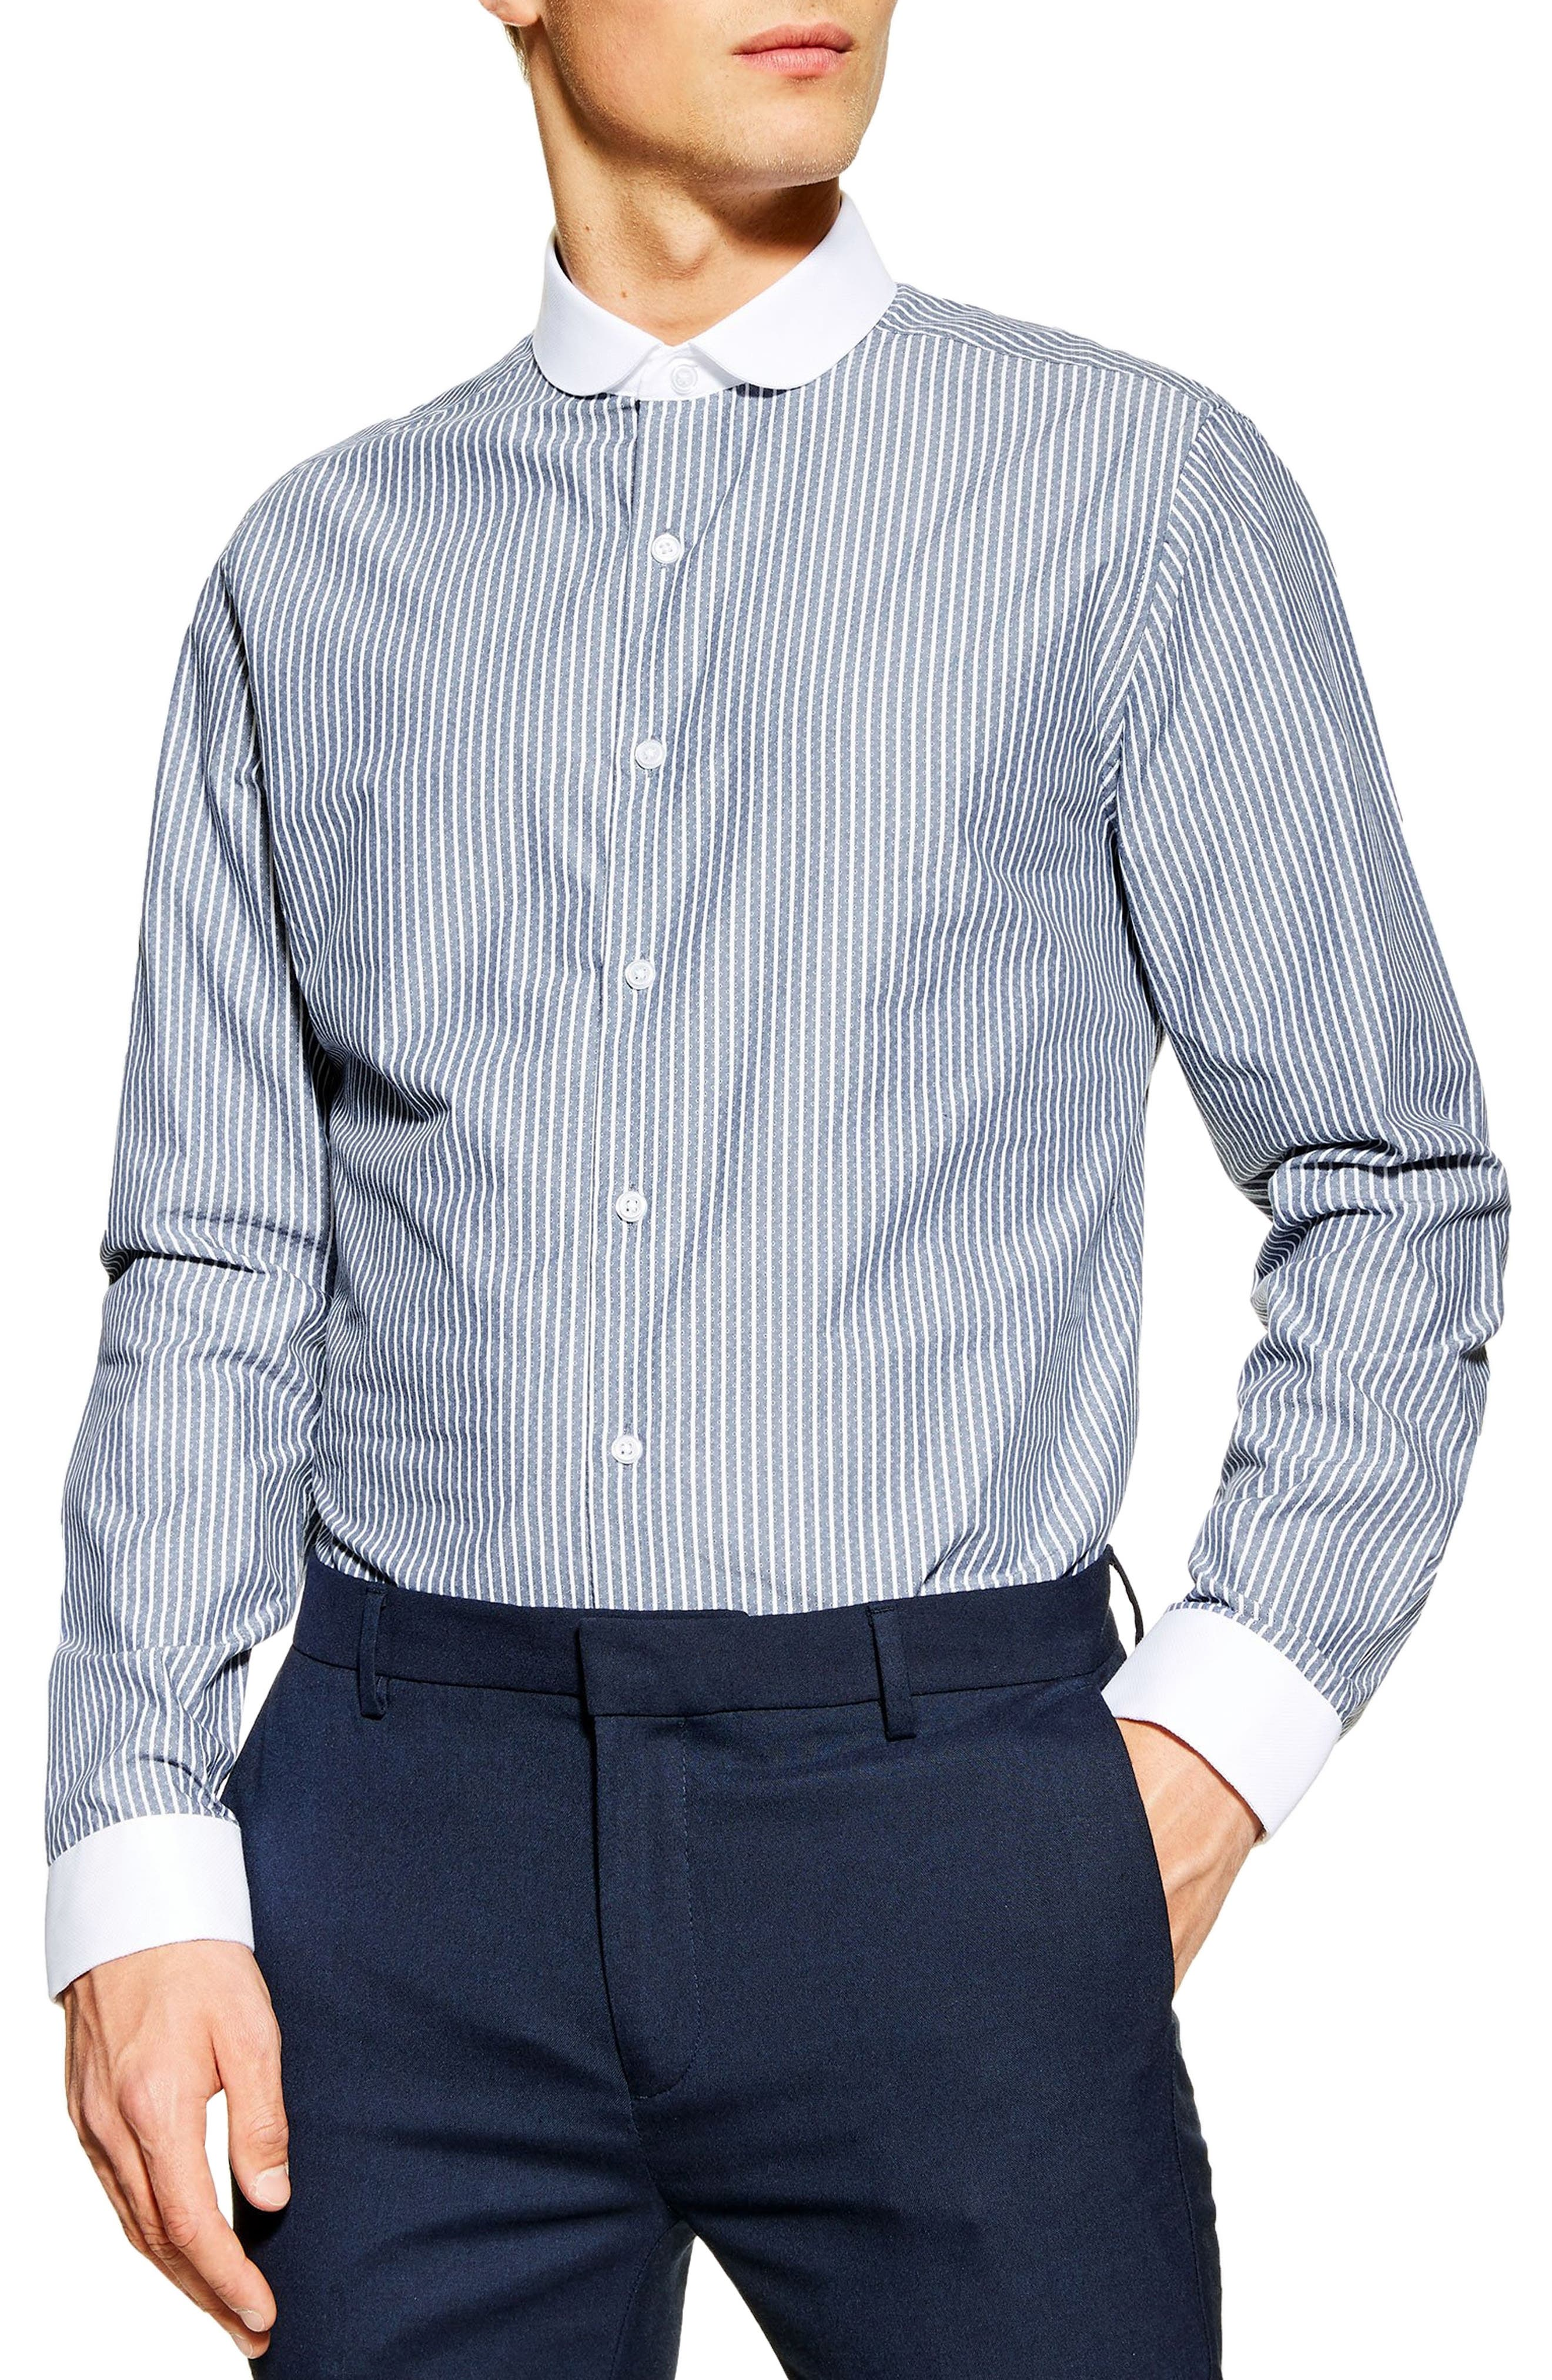 1920s Men's Dress Shirts Mens Topman Stretch Skinny Fit Dobby Stripe Shirt $55.00 AT vintagedancer.com